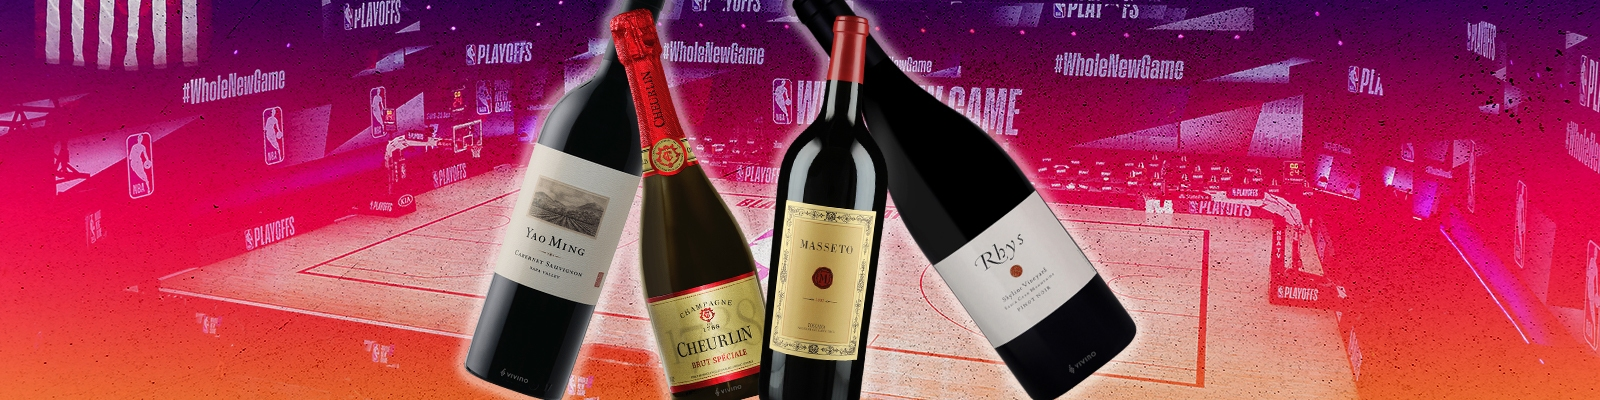 Here's Where To Buy The Wines That Are Regularly Being Shipped Into the NBA Bubble